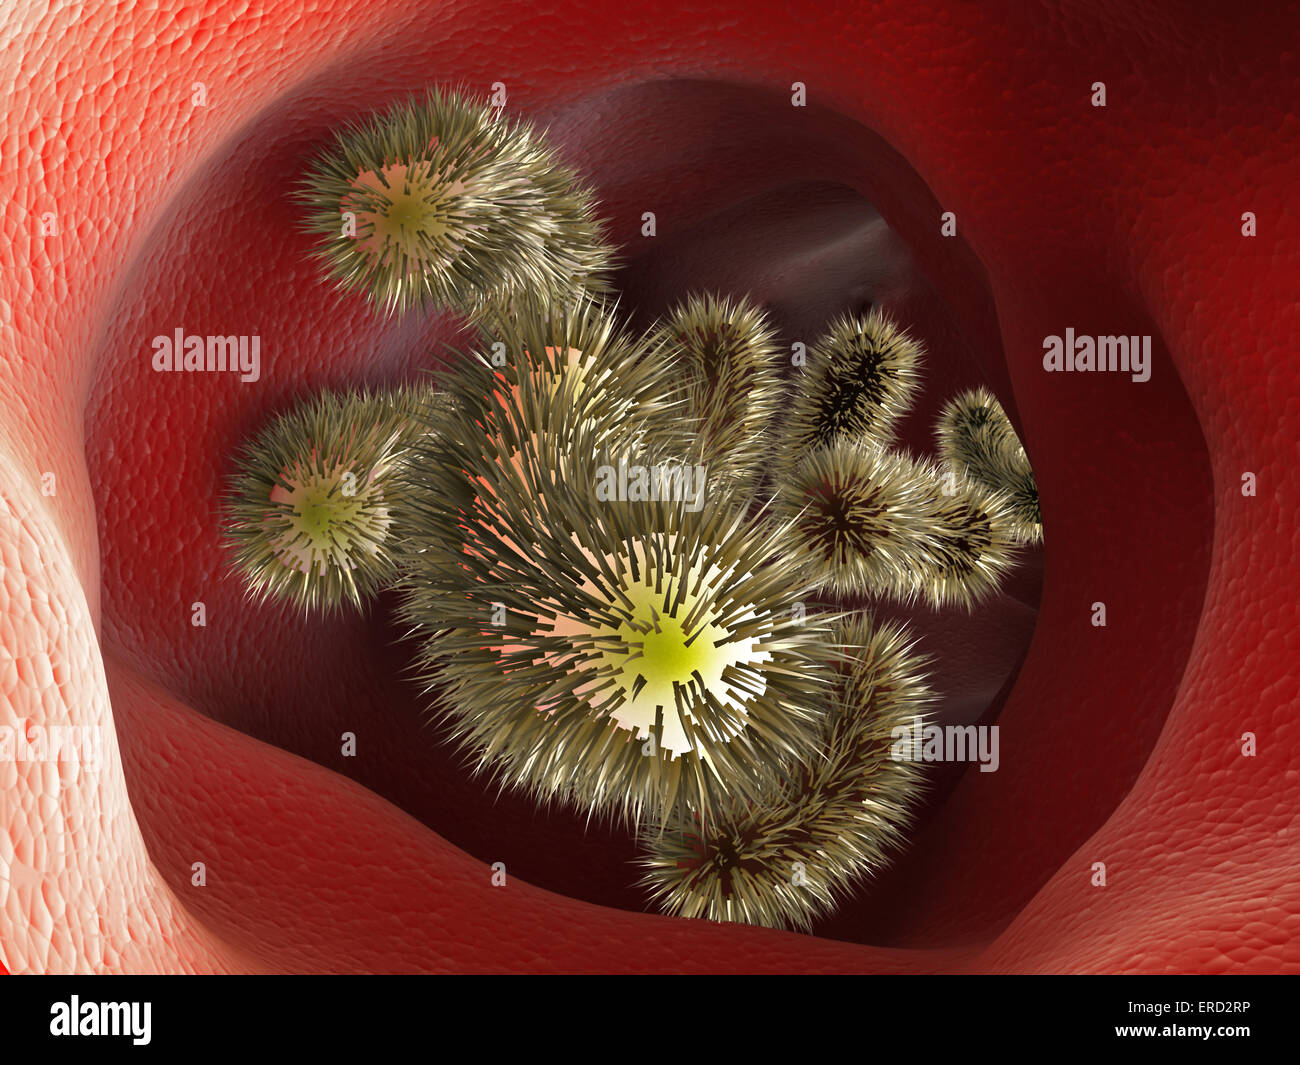 Bacteria moving inside human tissue - Stock Image